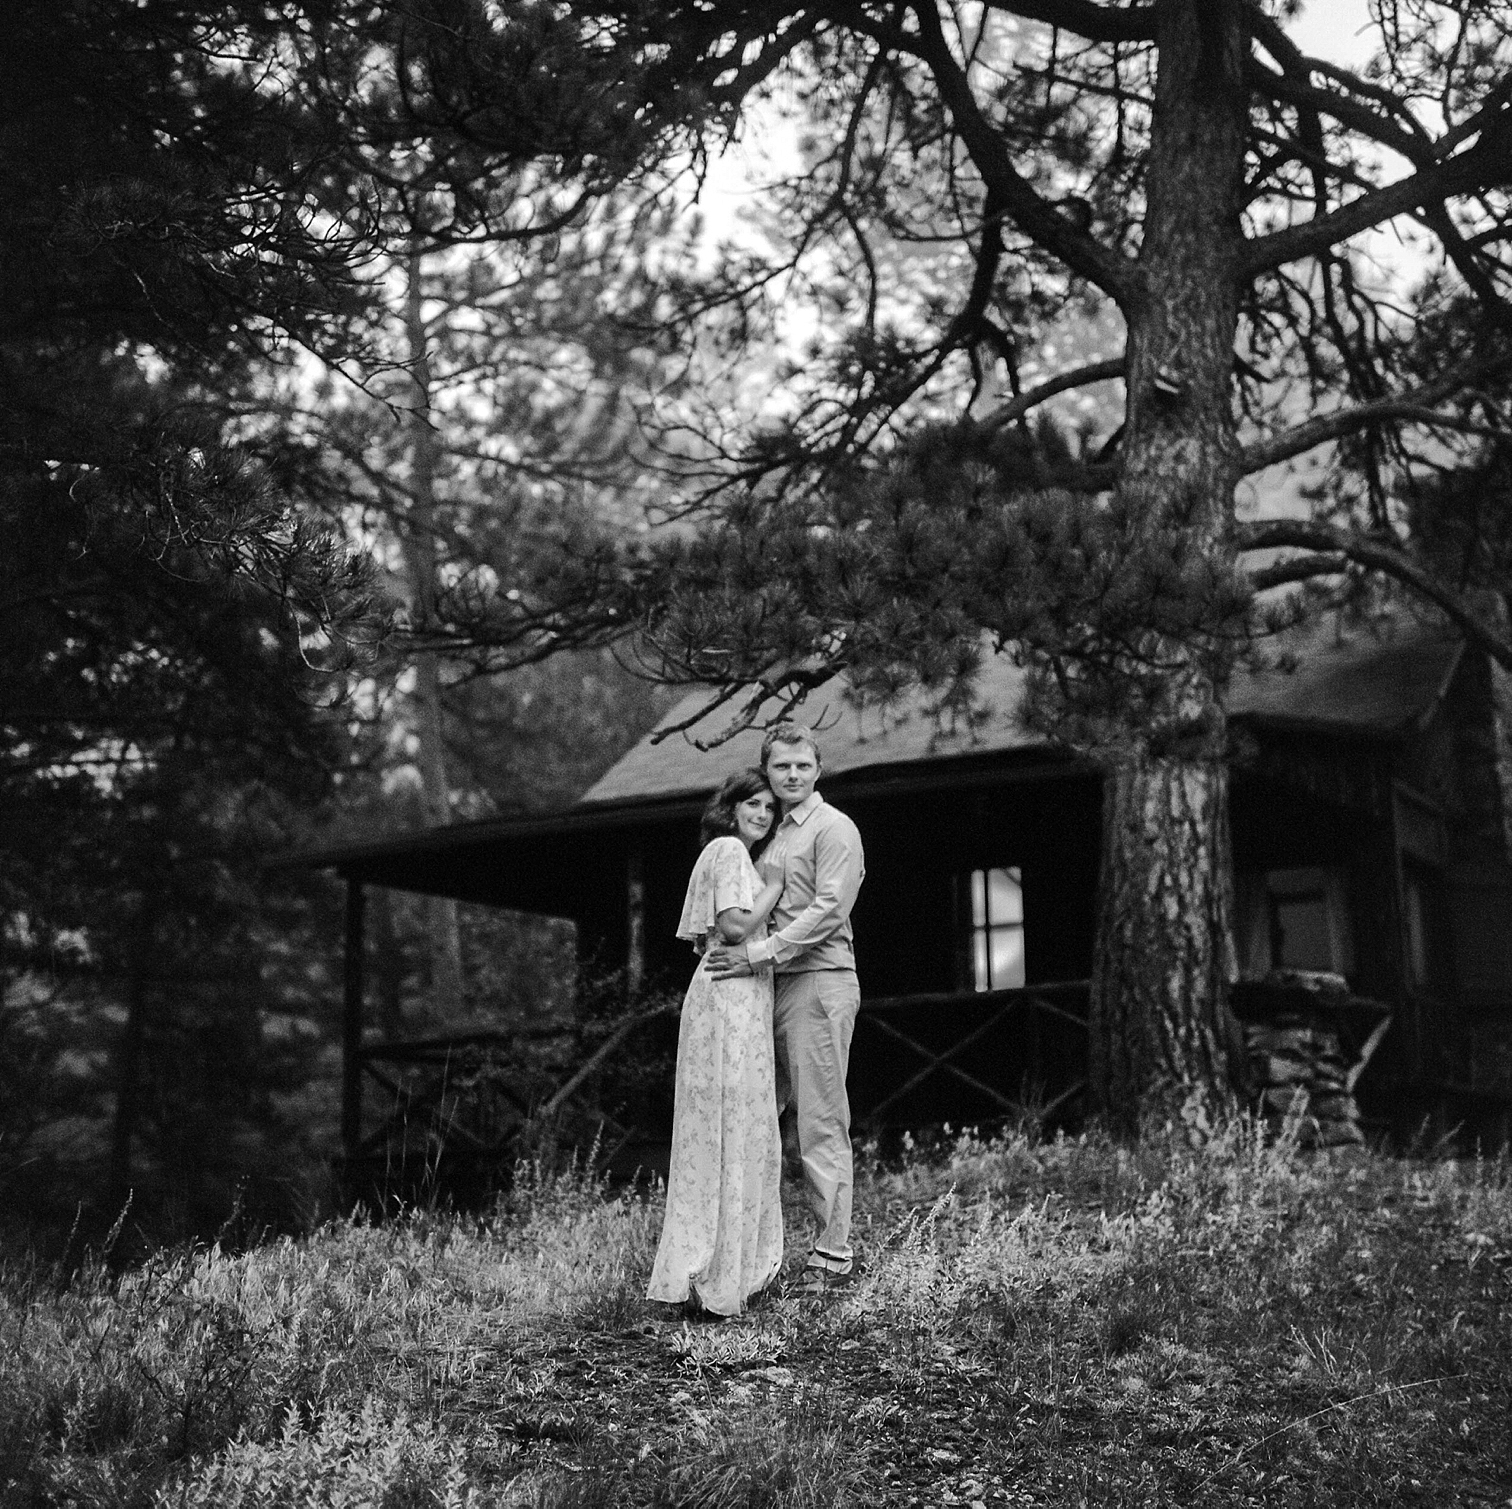 Colorado Engagement Photography, Colorado Engagement Photos, Denver Wedding Photographer, Engagement Photos In Colorado, Film Photographers In Colorado, Rolleiflex Portraits, Film Wedding Photographers, Best Engagement Photos In Colorado, Danielle DeFiore Photographers, Couple Standing By Cabin